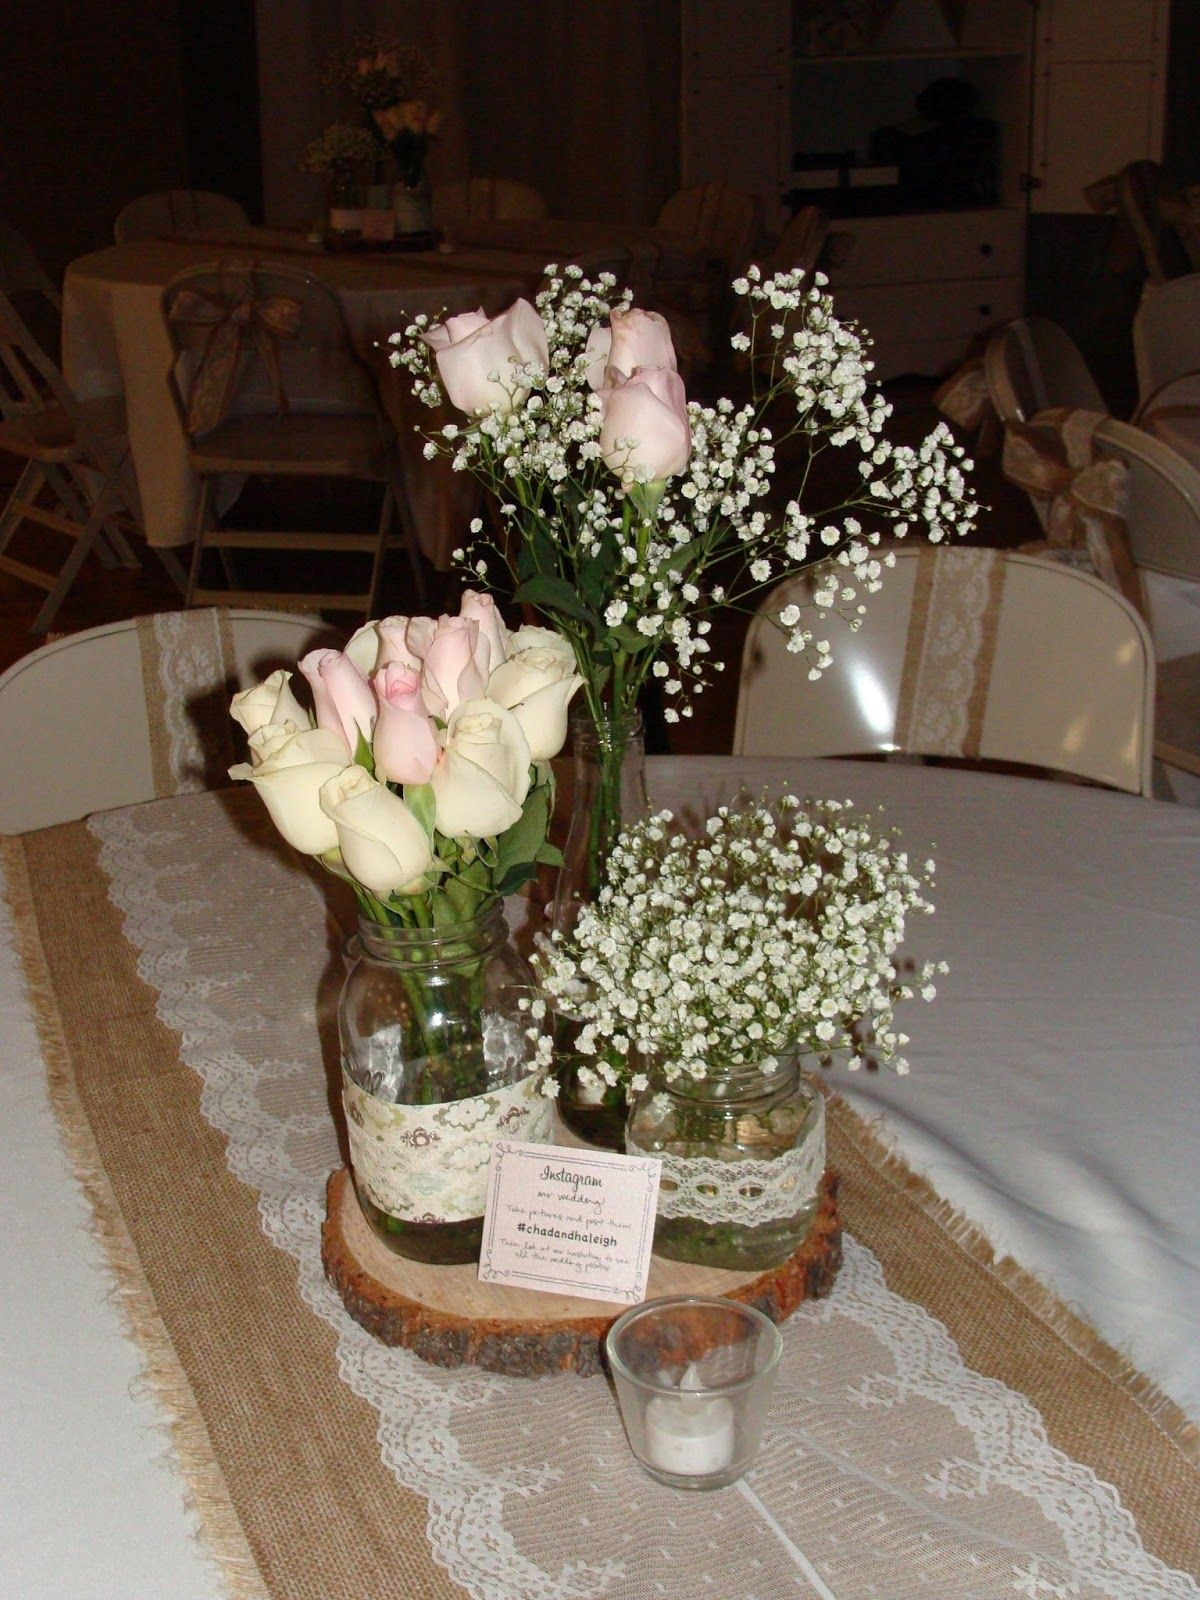 burlap and lace table cloths and lace served as a simple runner